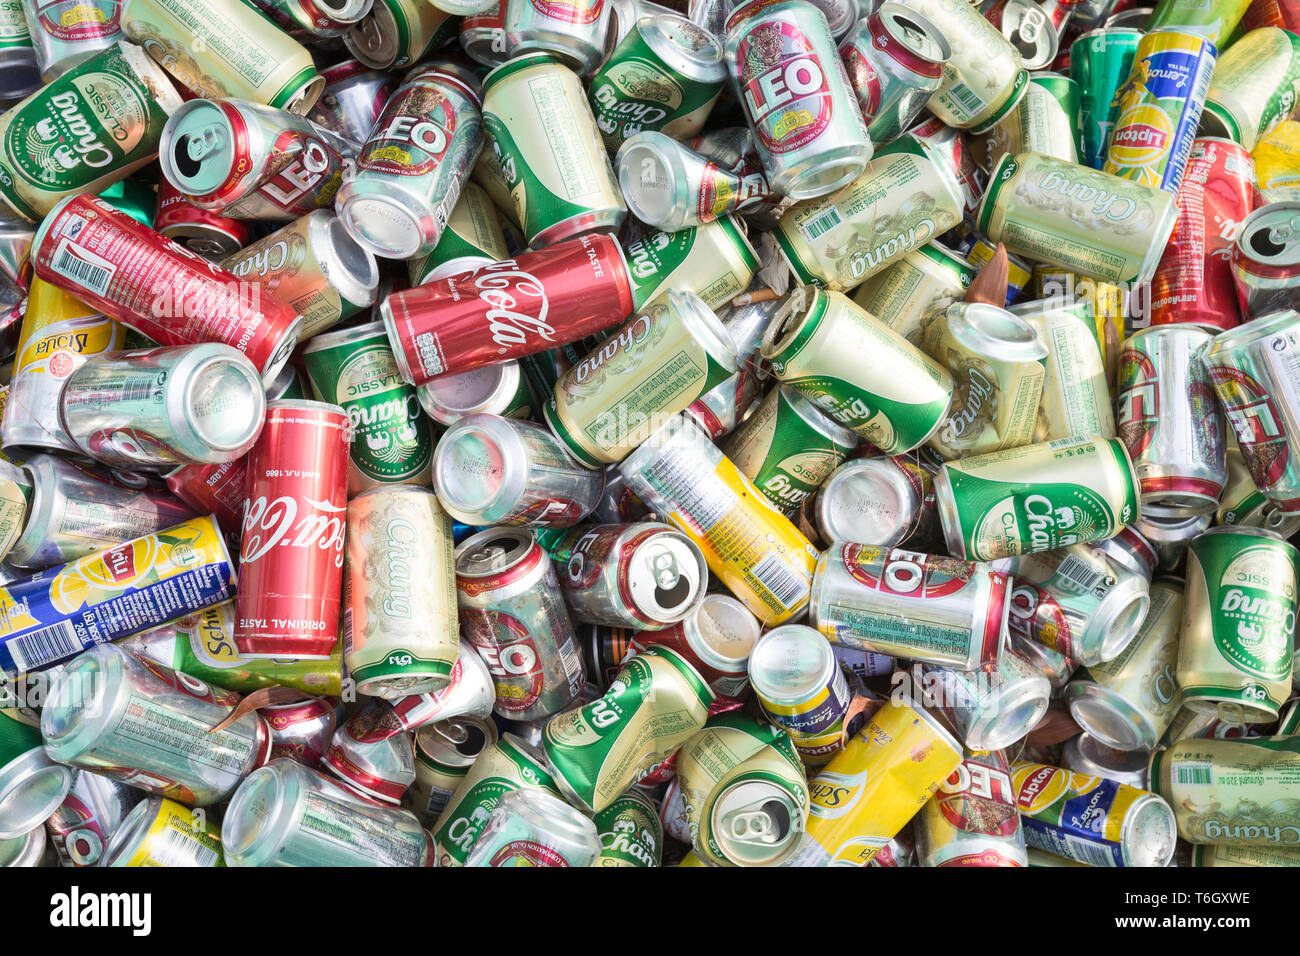 Aluminium cans for recycling - Stock Image